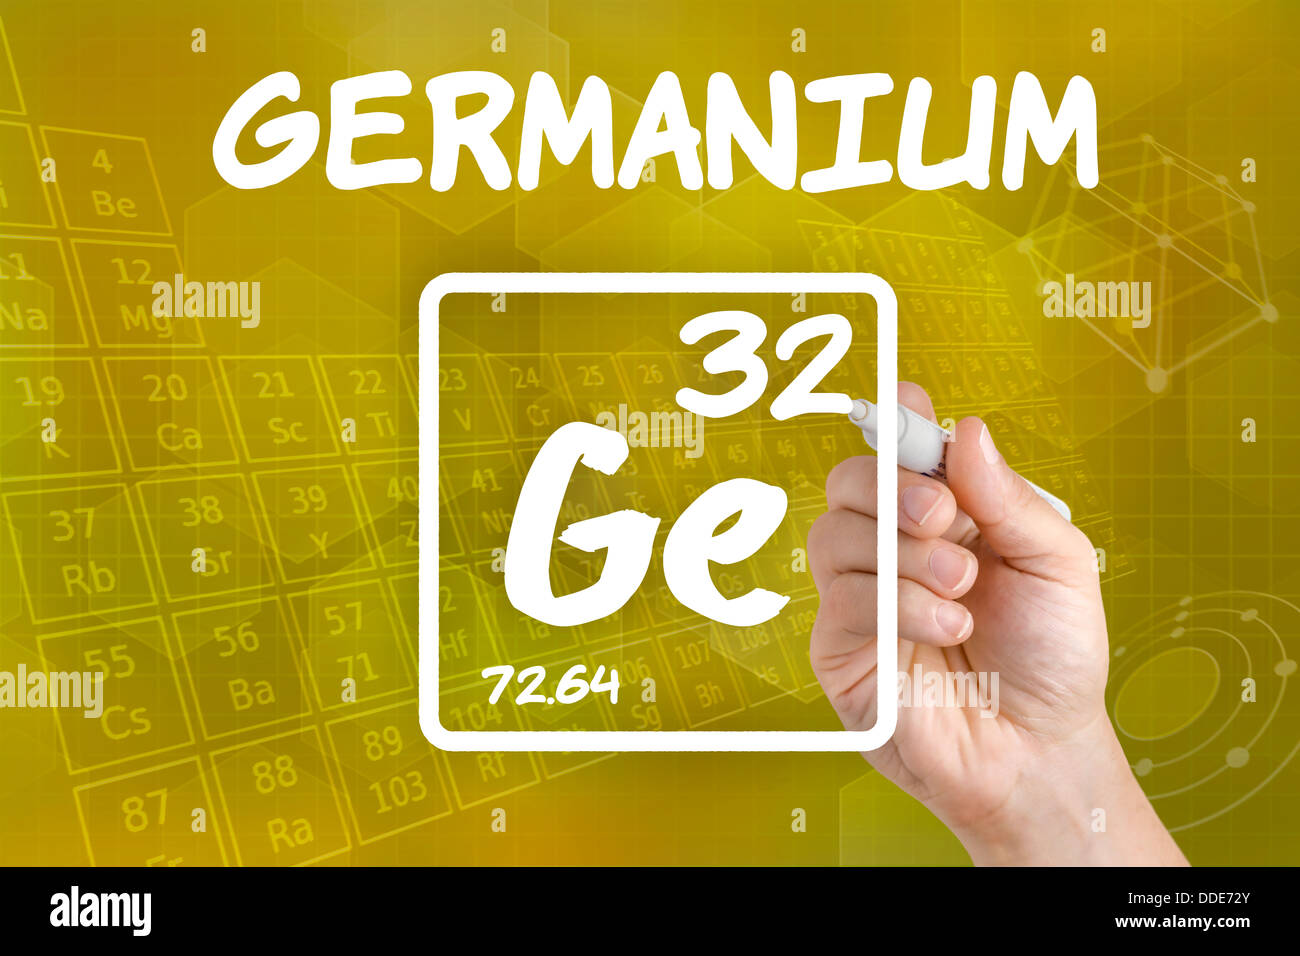 Symbol For The Chemical Element Germanium Stock Photo 59934531 Alamy